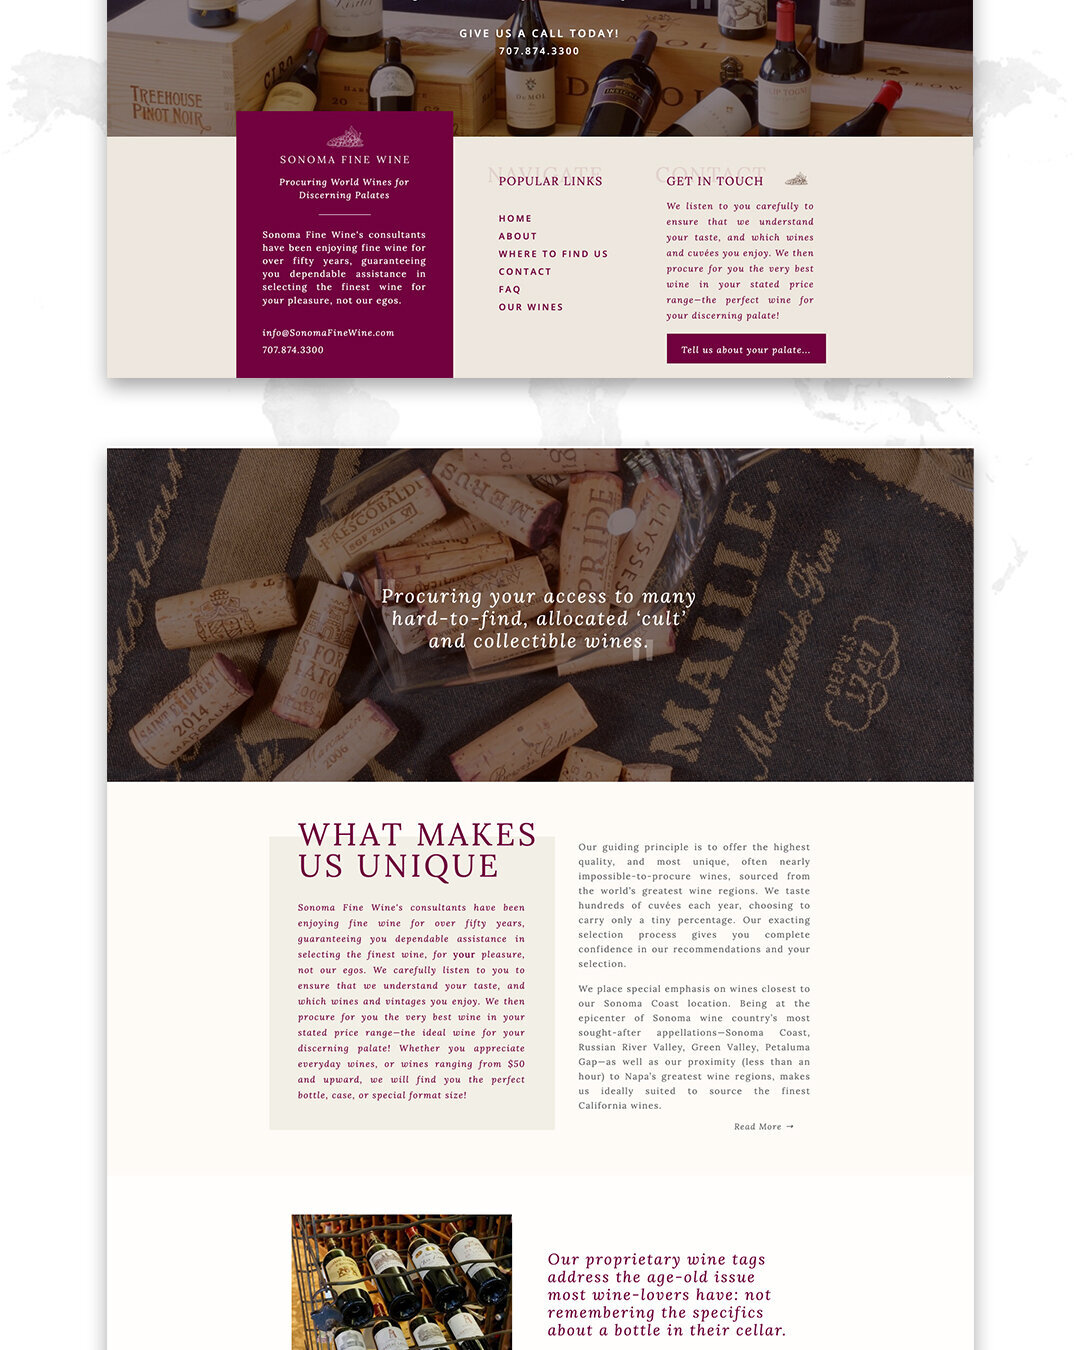 Showit-template-help-moreno-collective-sonoma-fine-wine